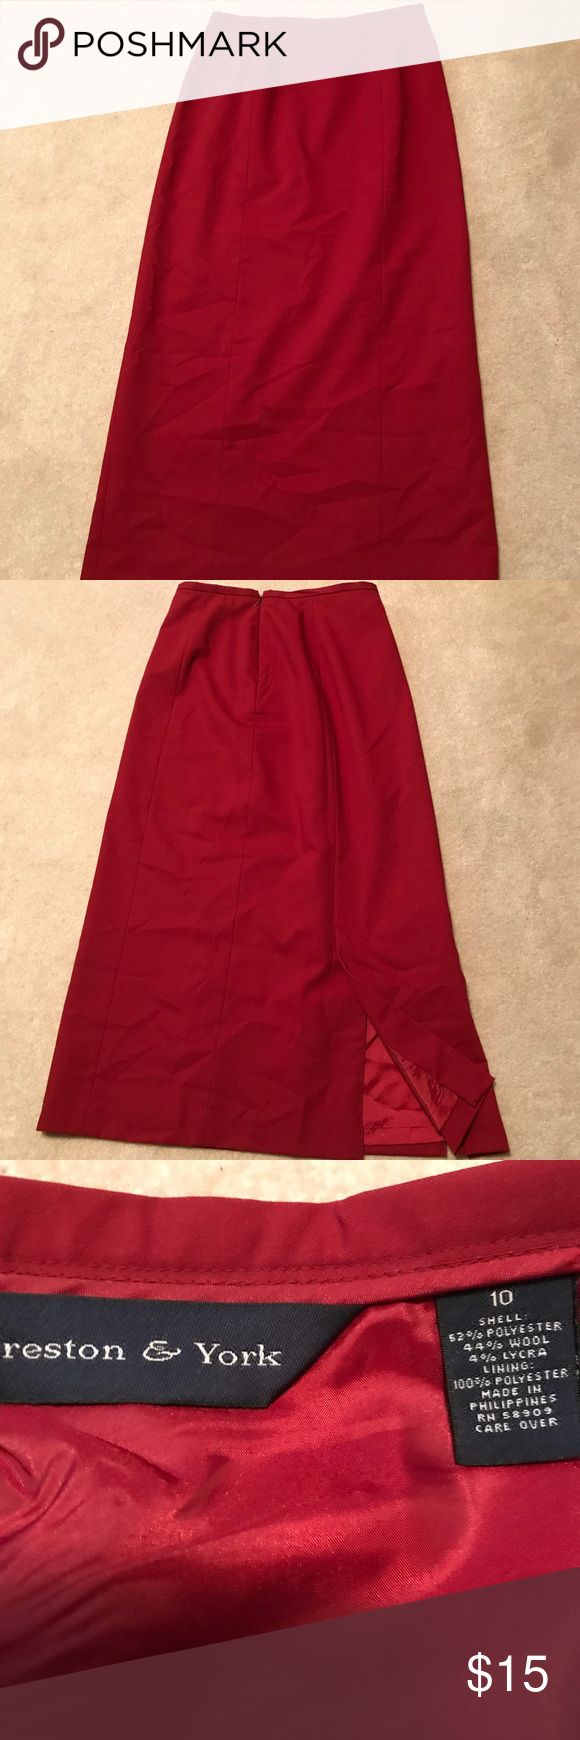 "Women's Preston & York long skirt size 10 Women's, Preston & York , long skirt, size 10. Shell 52% polyester, 44% wool, 4% lycra. Lining 100% polyester. Slit and zipper in back. Waist to bottom measured 35"". Dry Clean Only Preston&York Skirts Maxi"